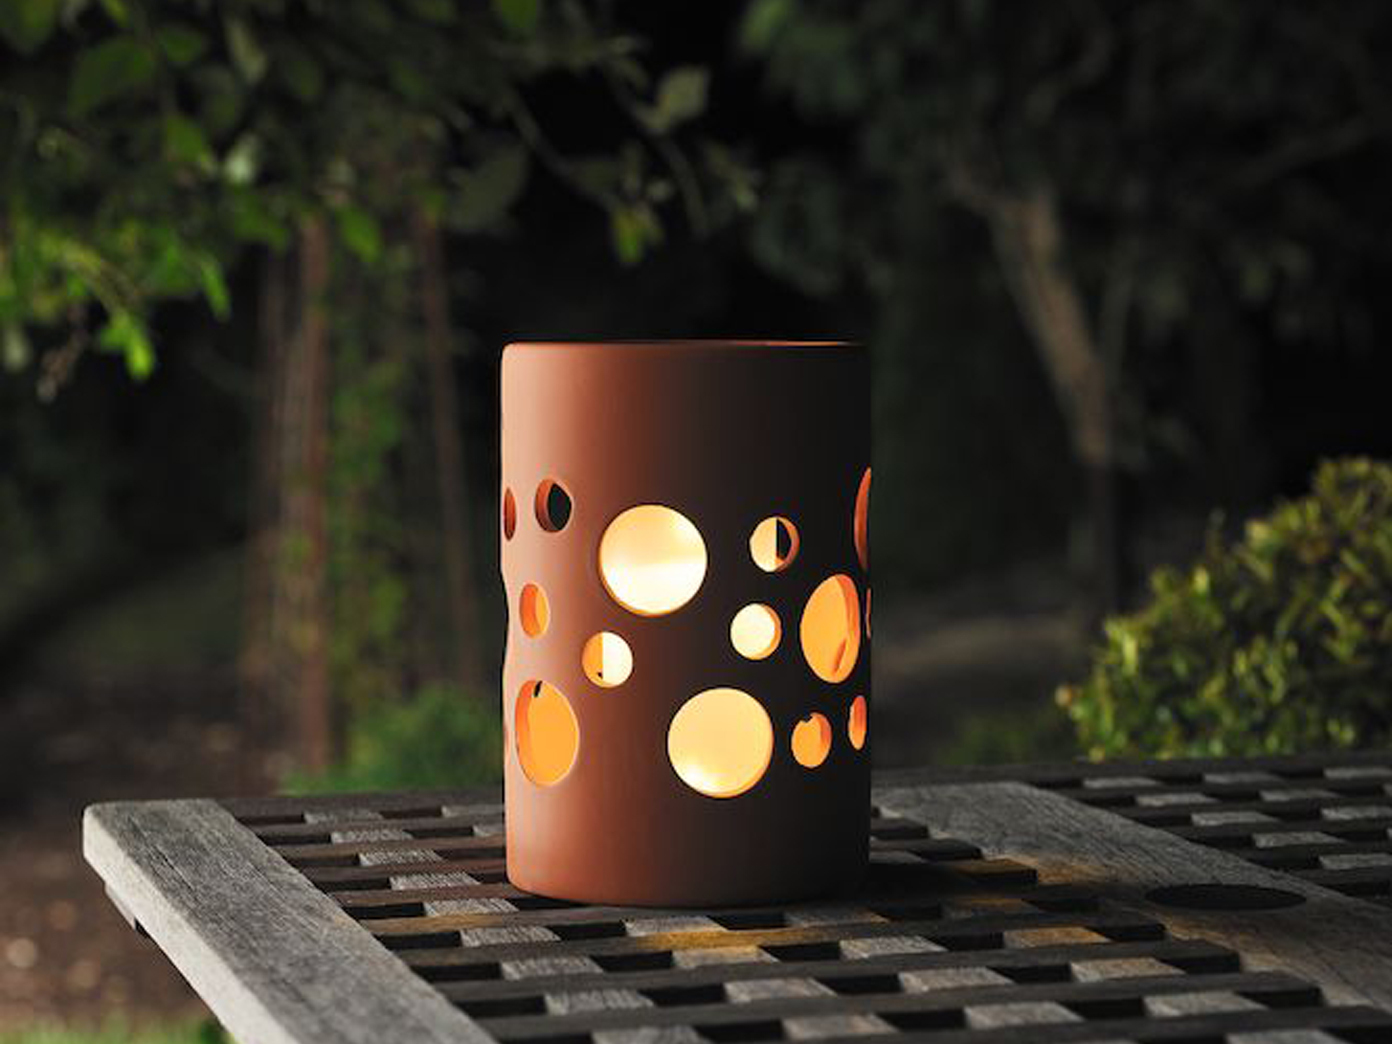 terracotta tischleuchte keramik solar led d mmerungssensor tischlampe garten ebay. Black Bedroom Furniture Sets. Home Design Ideas